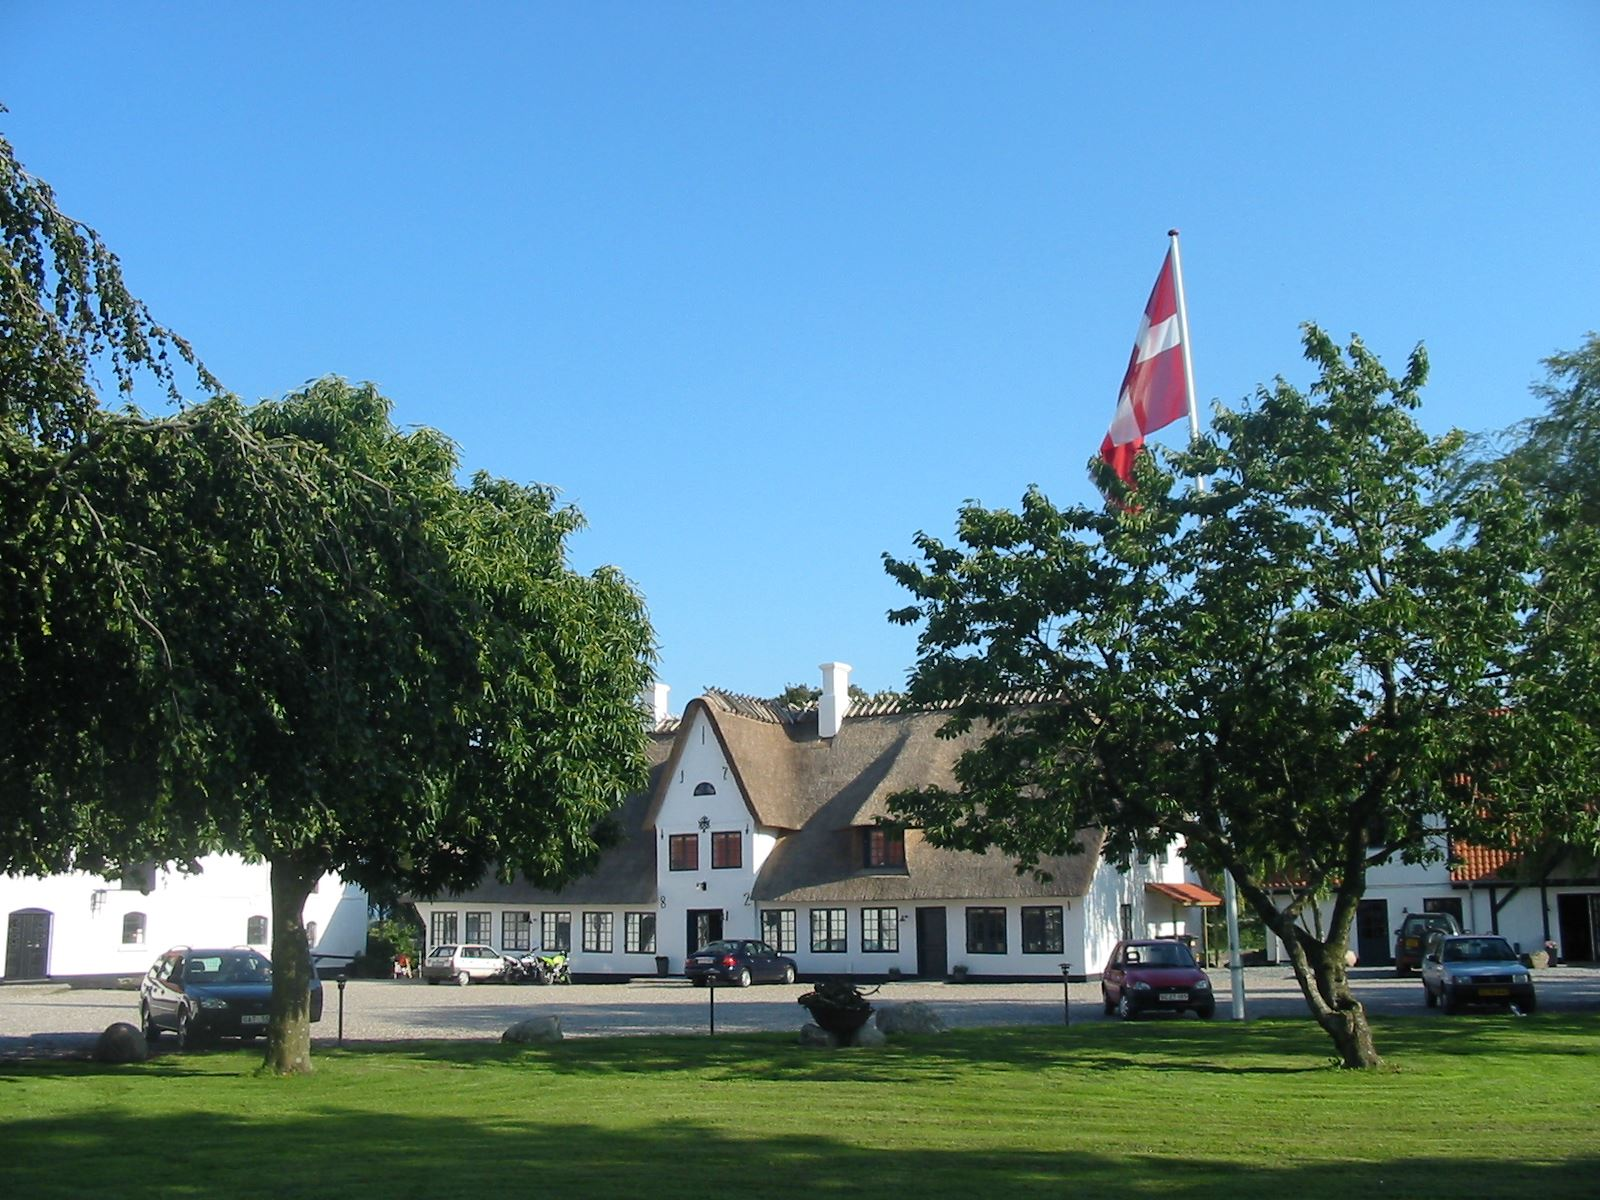 Benniksgaard is surrounded by idyllic countryside